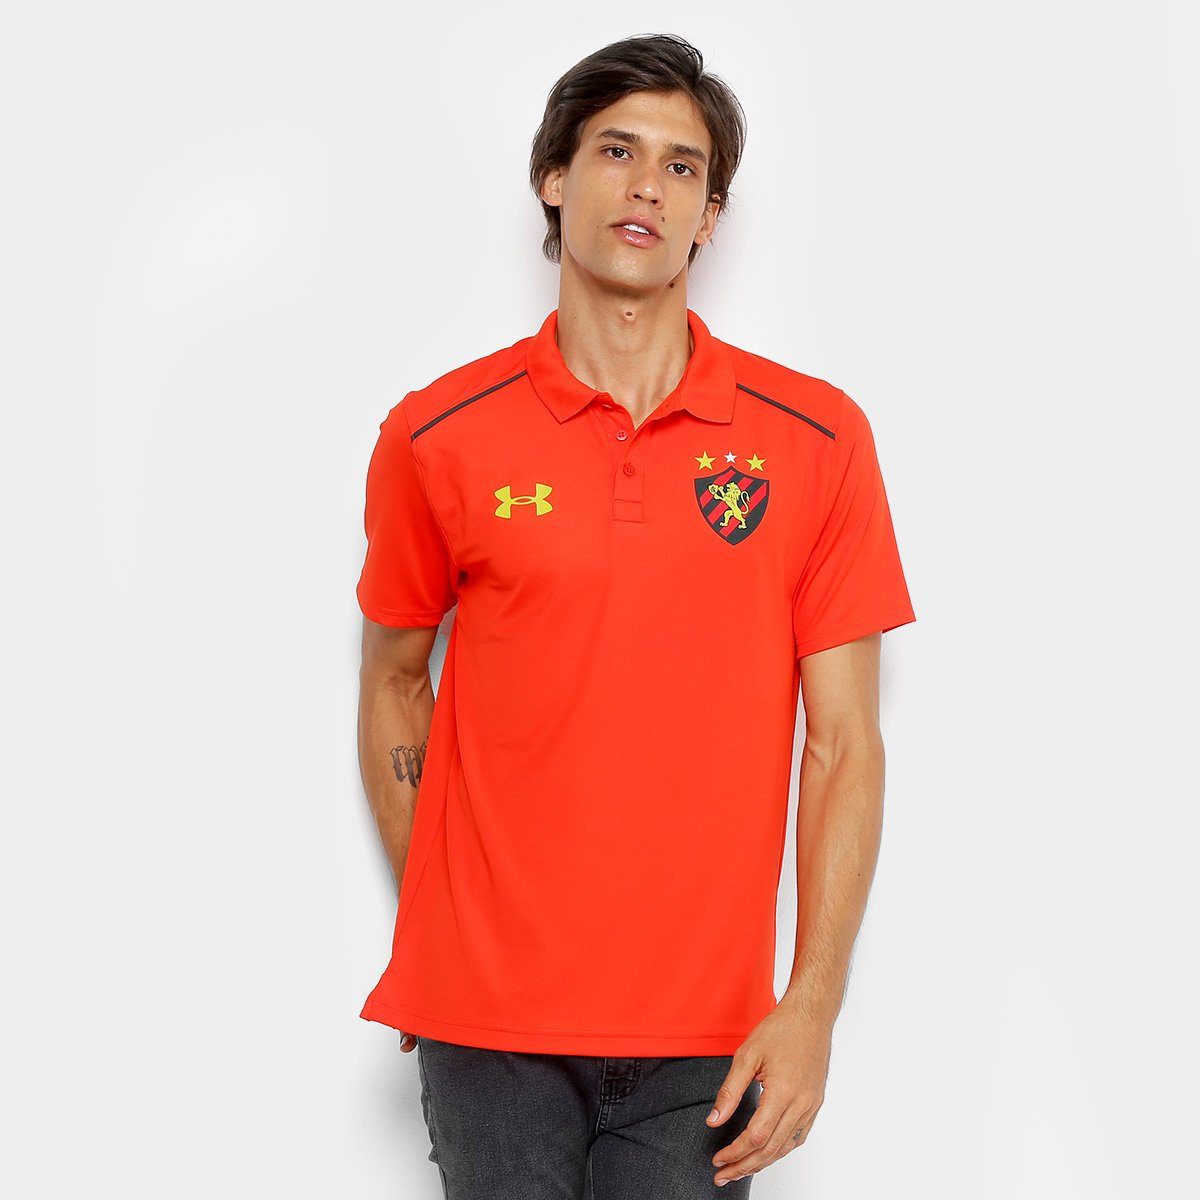 Camisa Polo Sport Recife 2018 Under Armour Masculina 2171288137f5d